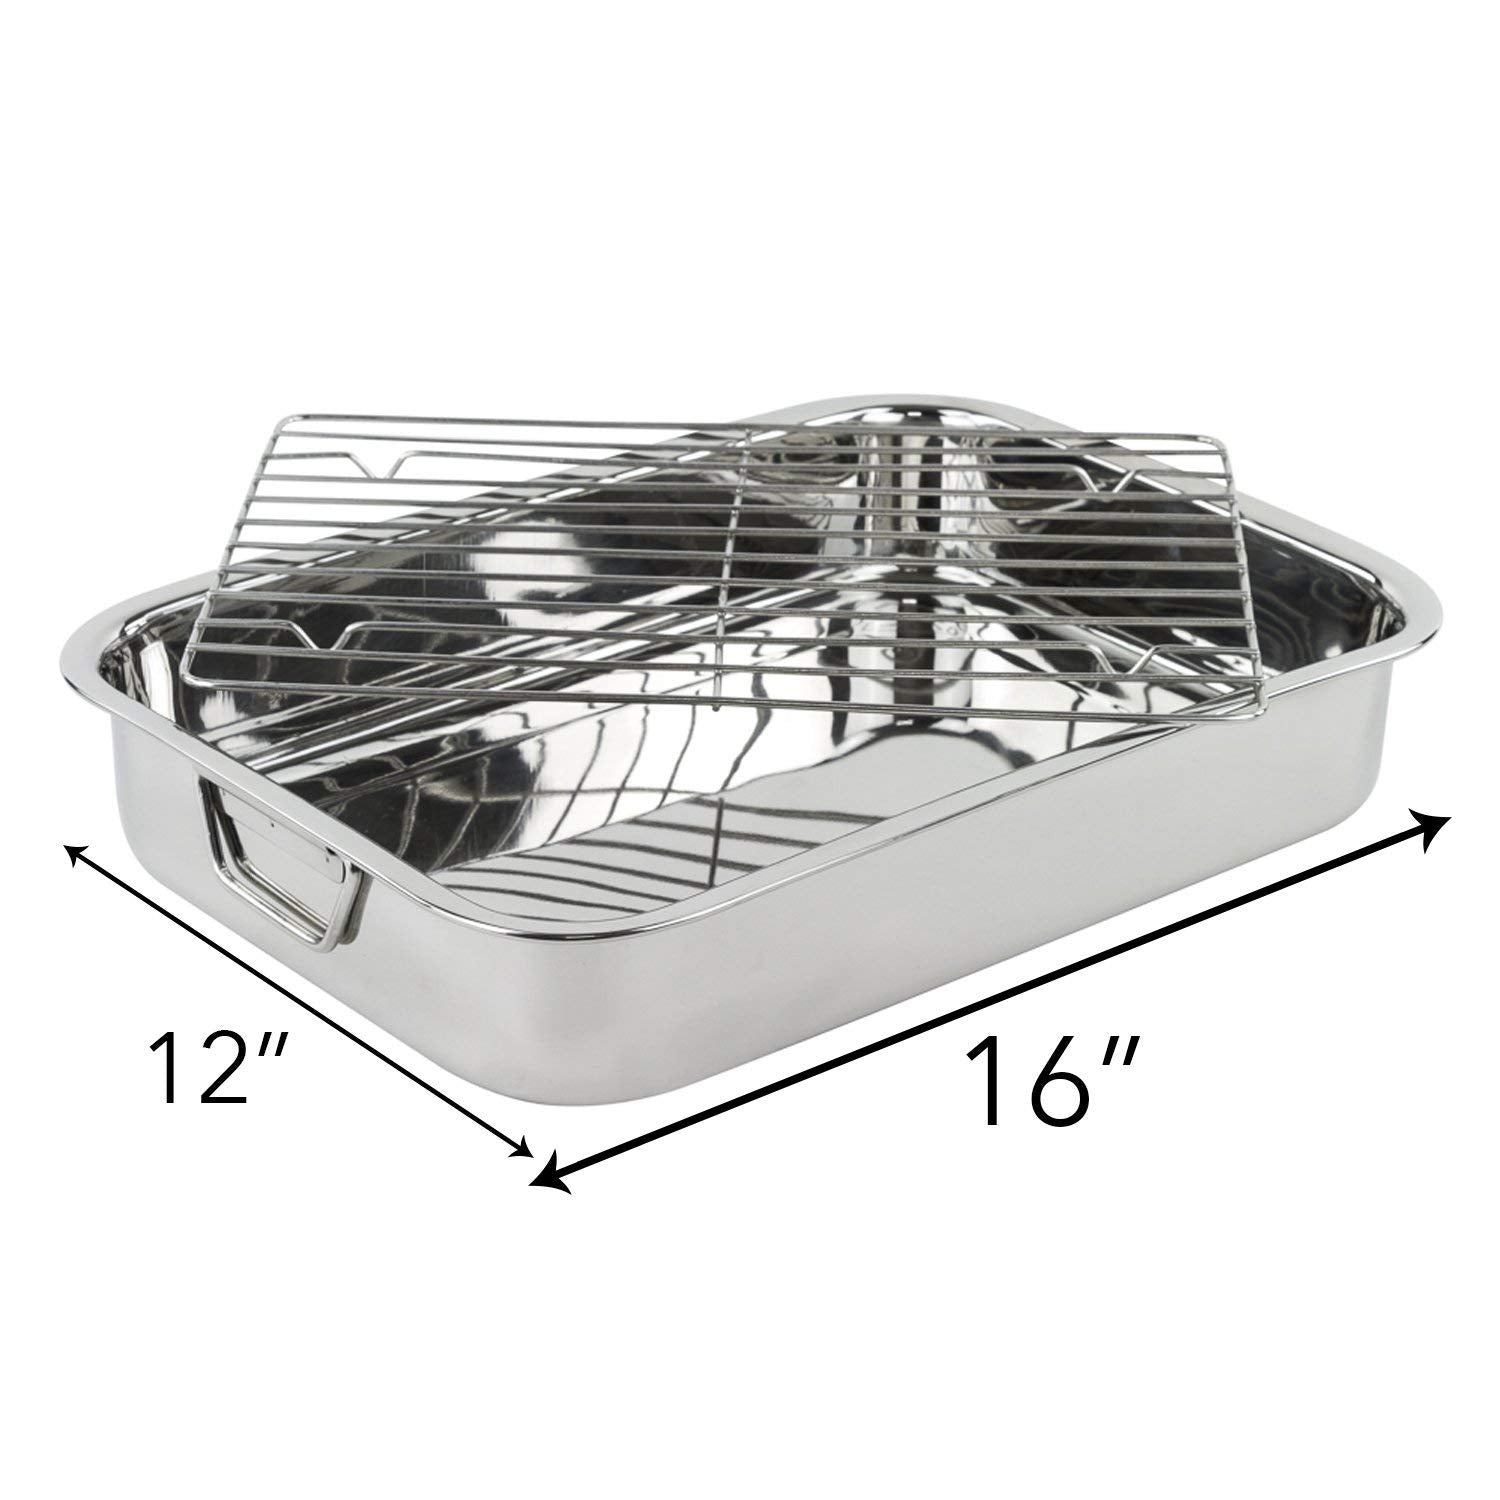 "Roasting Pan - Heavy Duty Stainless Steel 16"" Lasagna Turkey Roaster Pan W/ Rack"